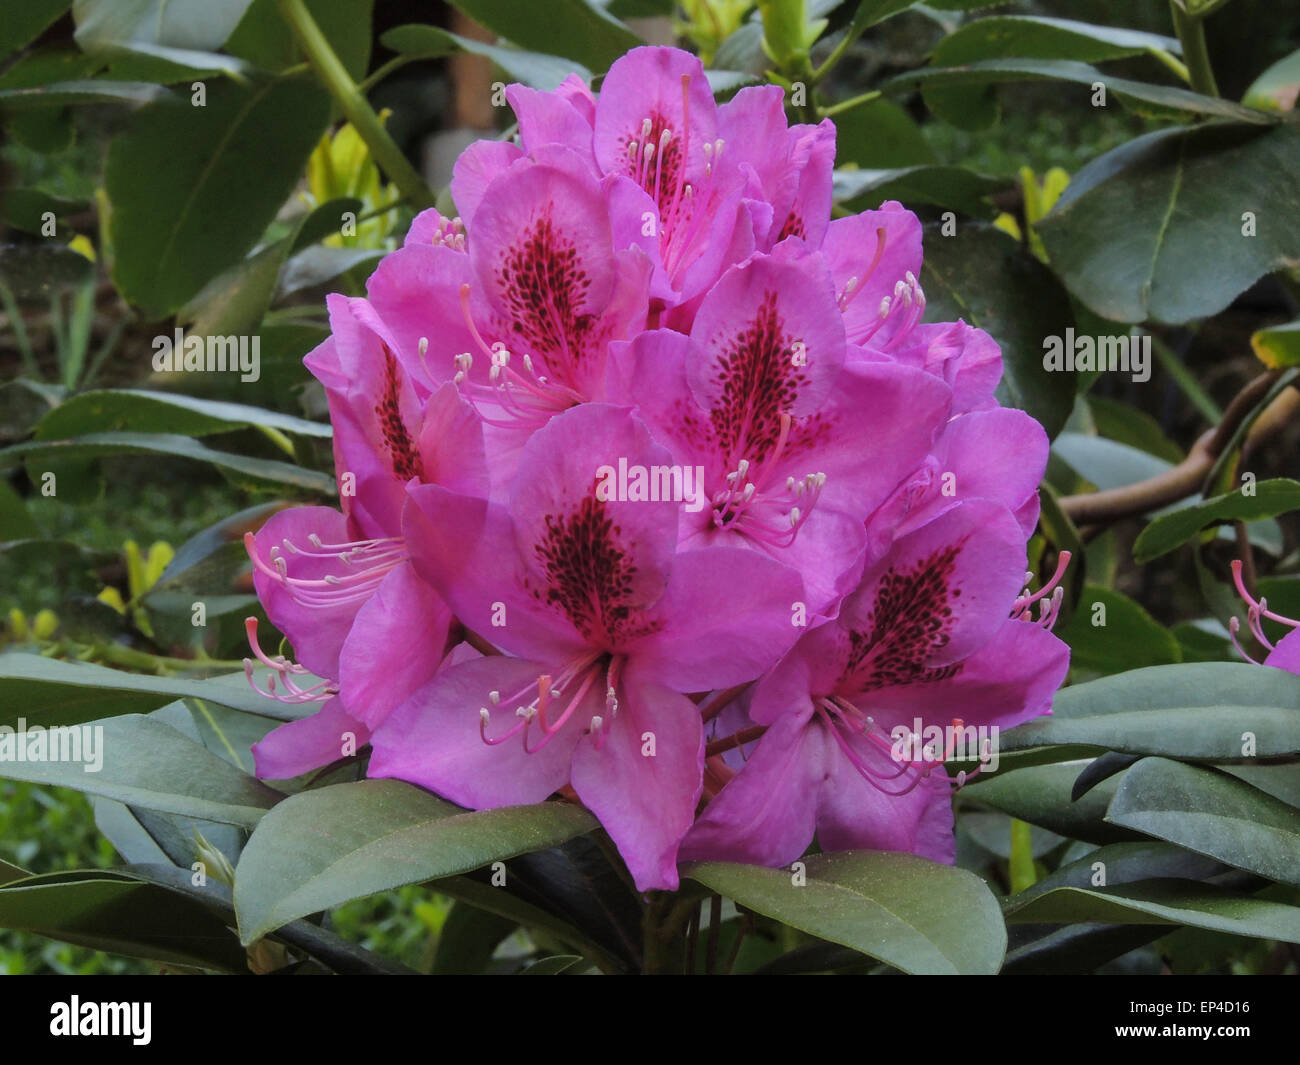 The early spring bloom of an evergreen Rhododendron, Sierra foothills of Northern California.. - Stock Image